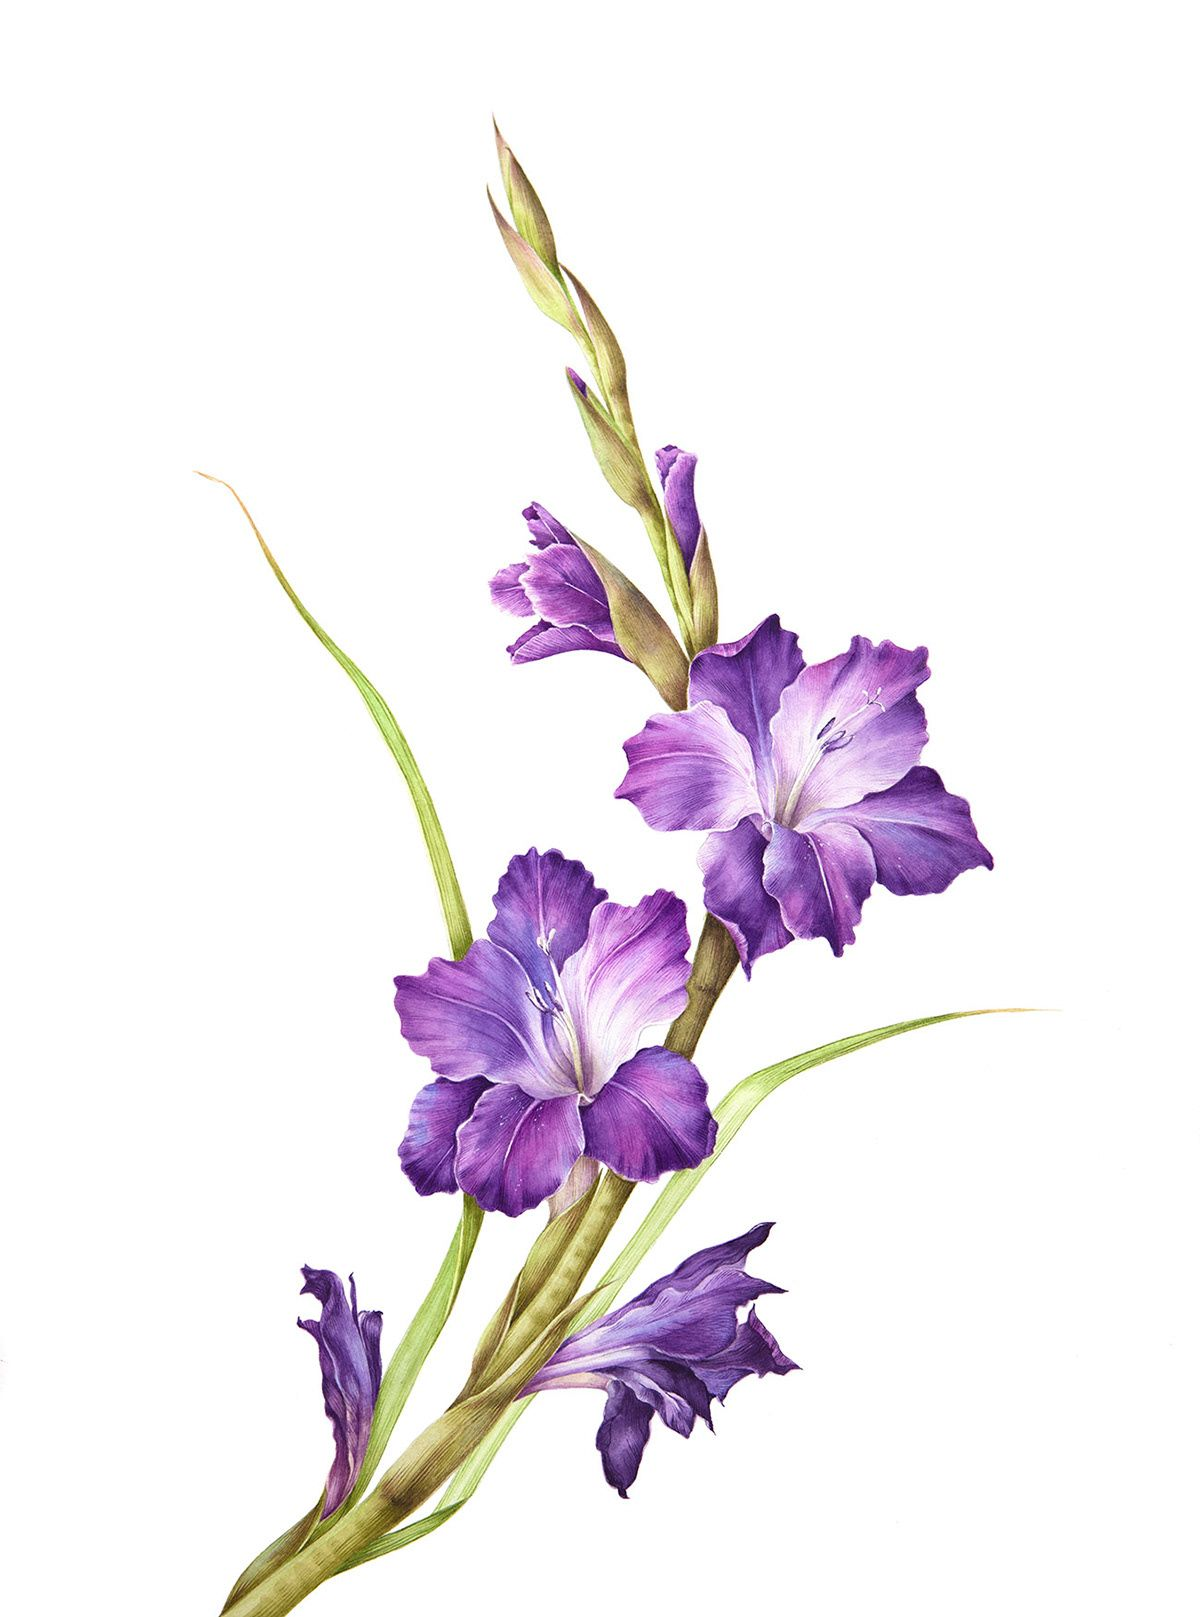 Gladiolus Represent Strength Honor And Conviction In 2020 Birth Flower Tattoos Gladiolus Flower Tattoos Gladiolus Flower